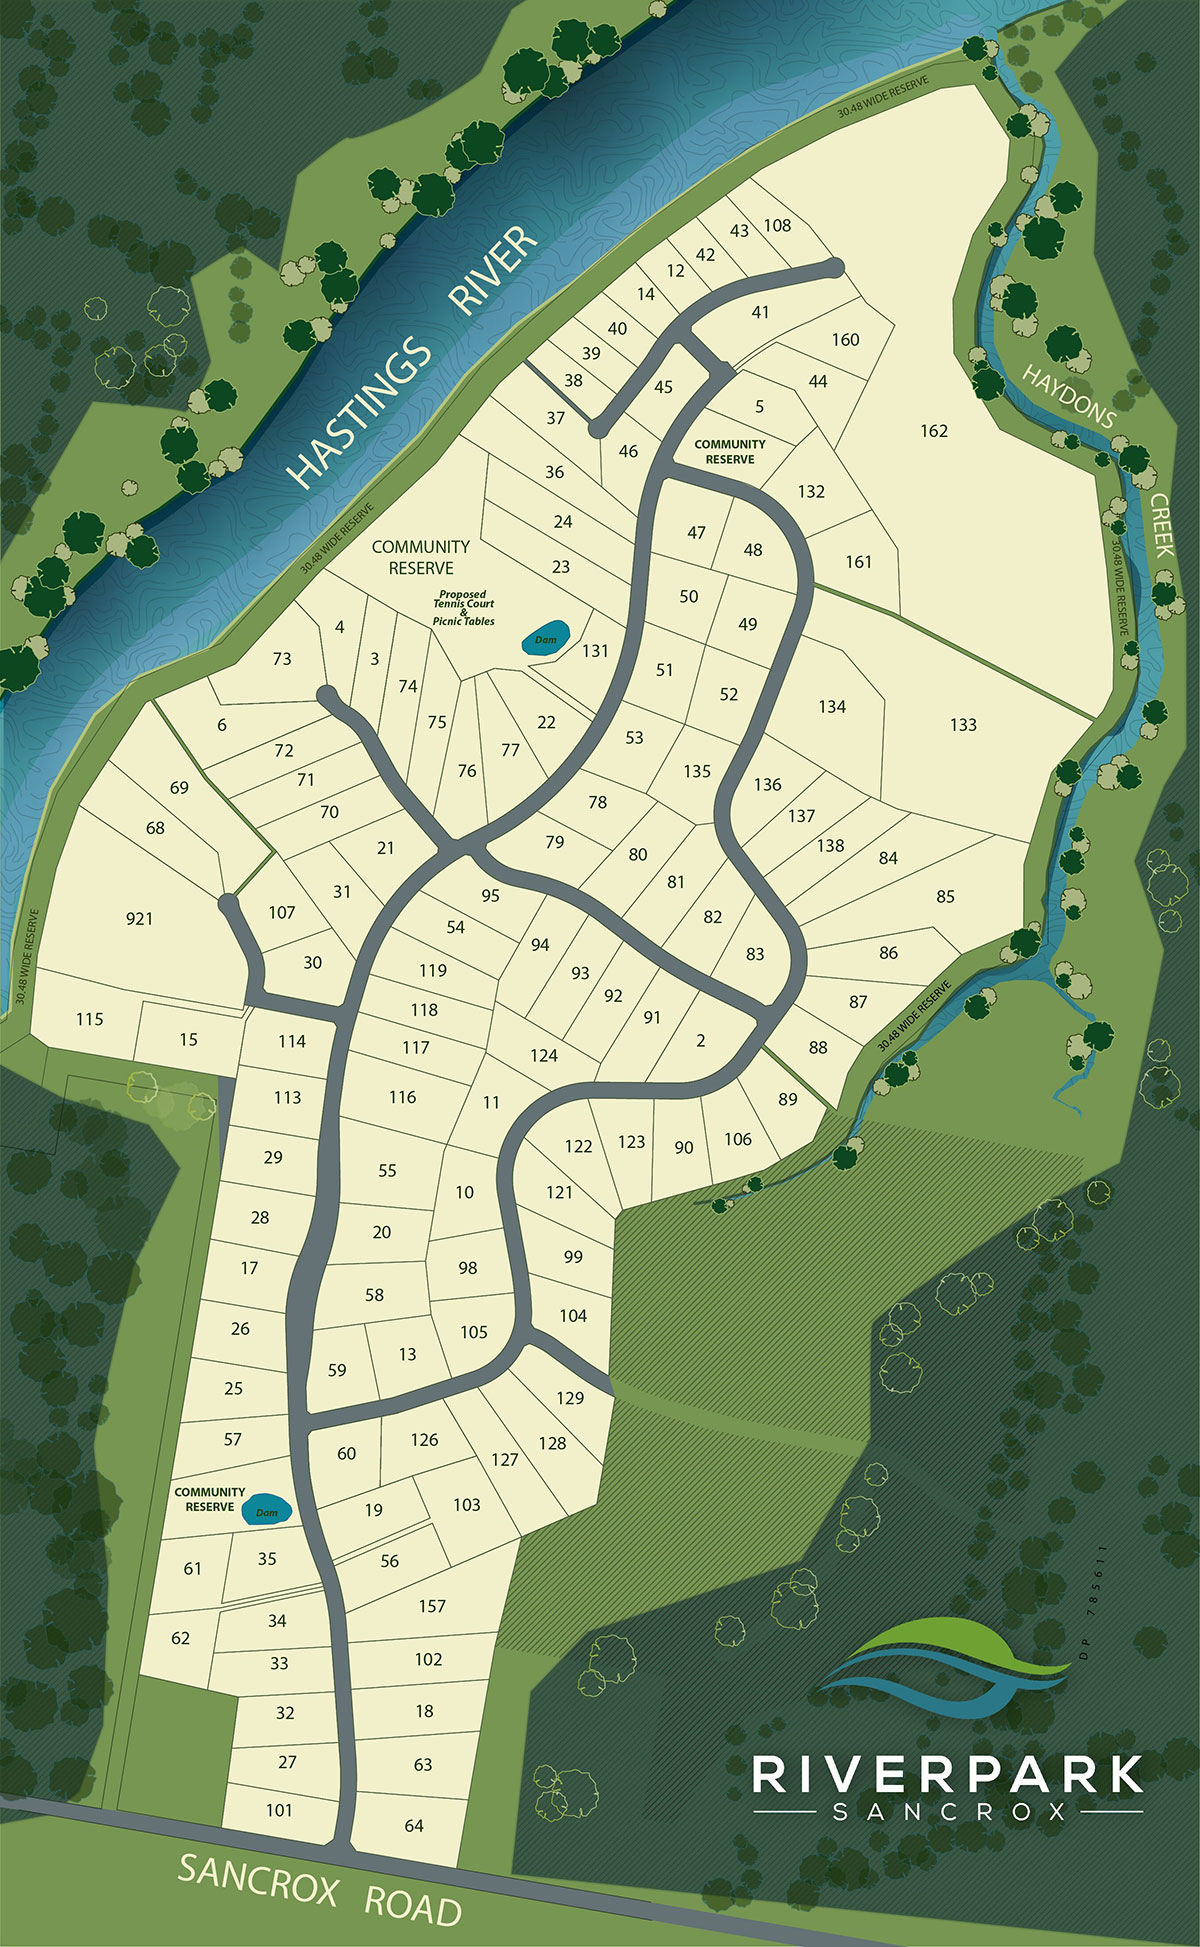 Riverpark_MasterPlan_v4_